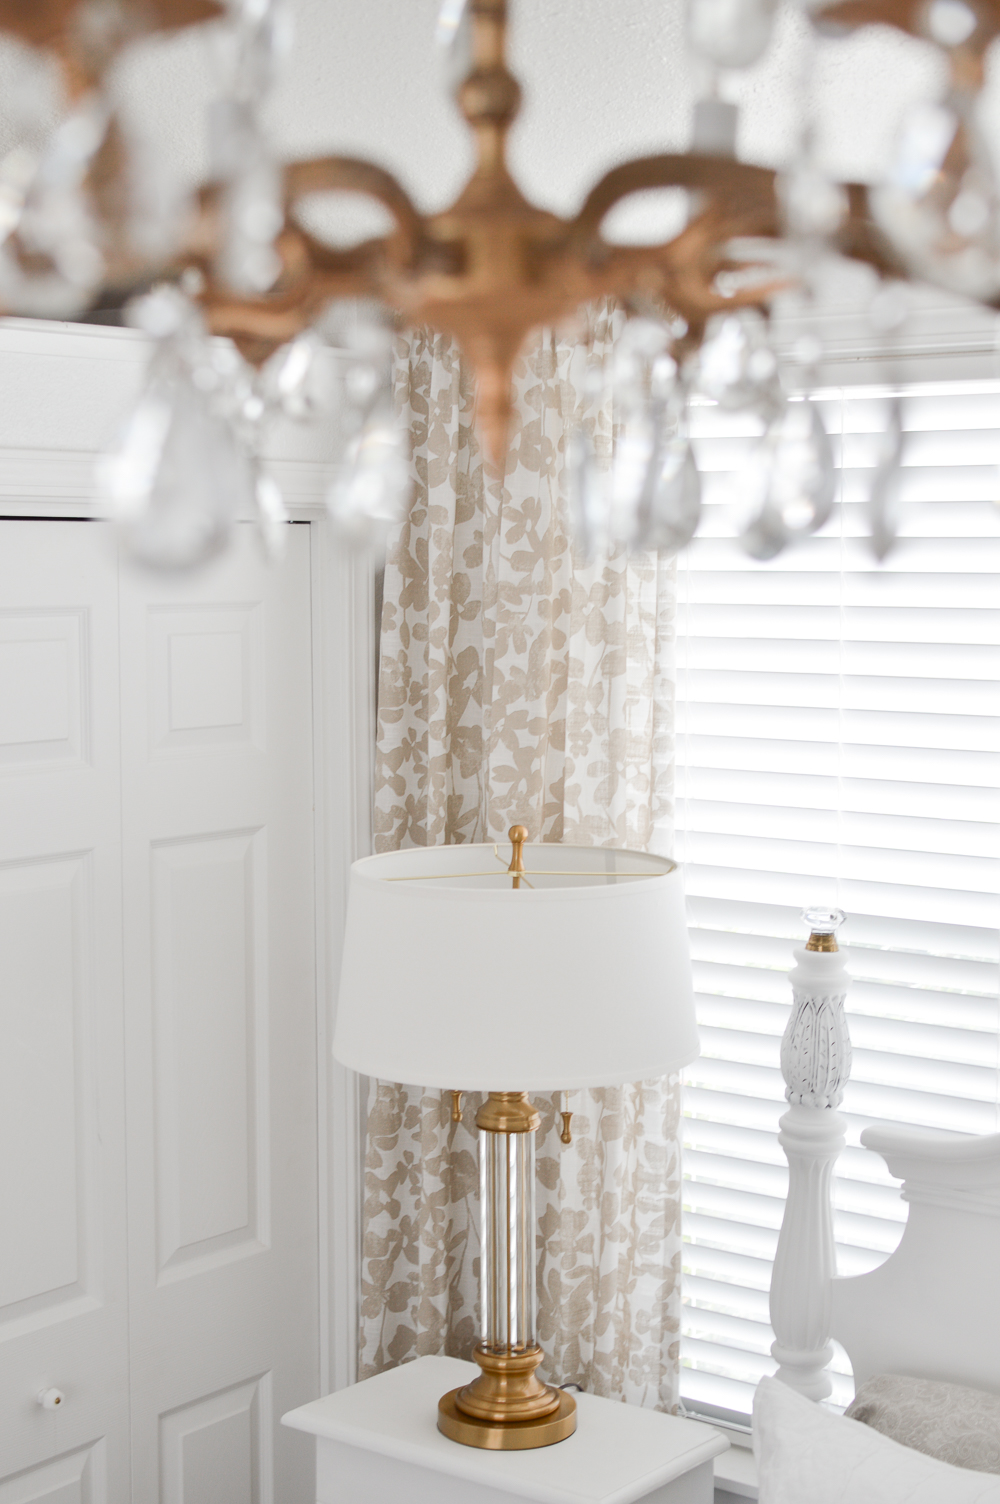 How To Pick The Perfect Lighting - Light Fixture Guidelines & Tips at www.foxhollowcottage.com featuring Lamps Plus Rolland Brass/Crystal Table Lamp #ad